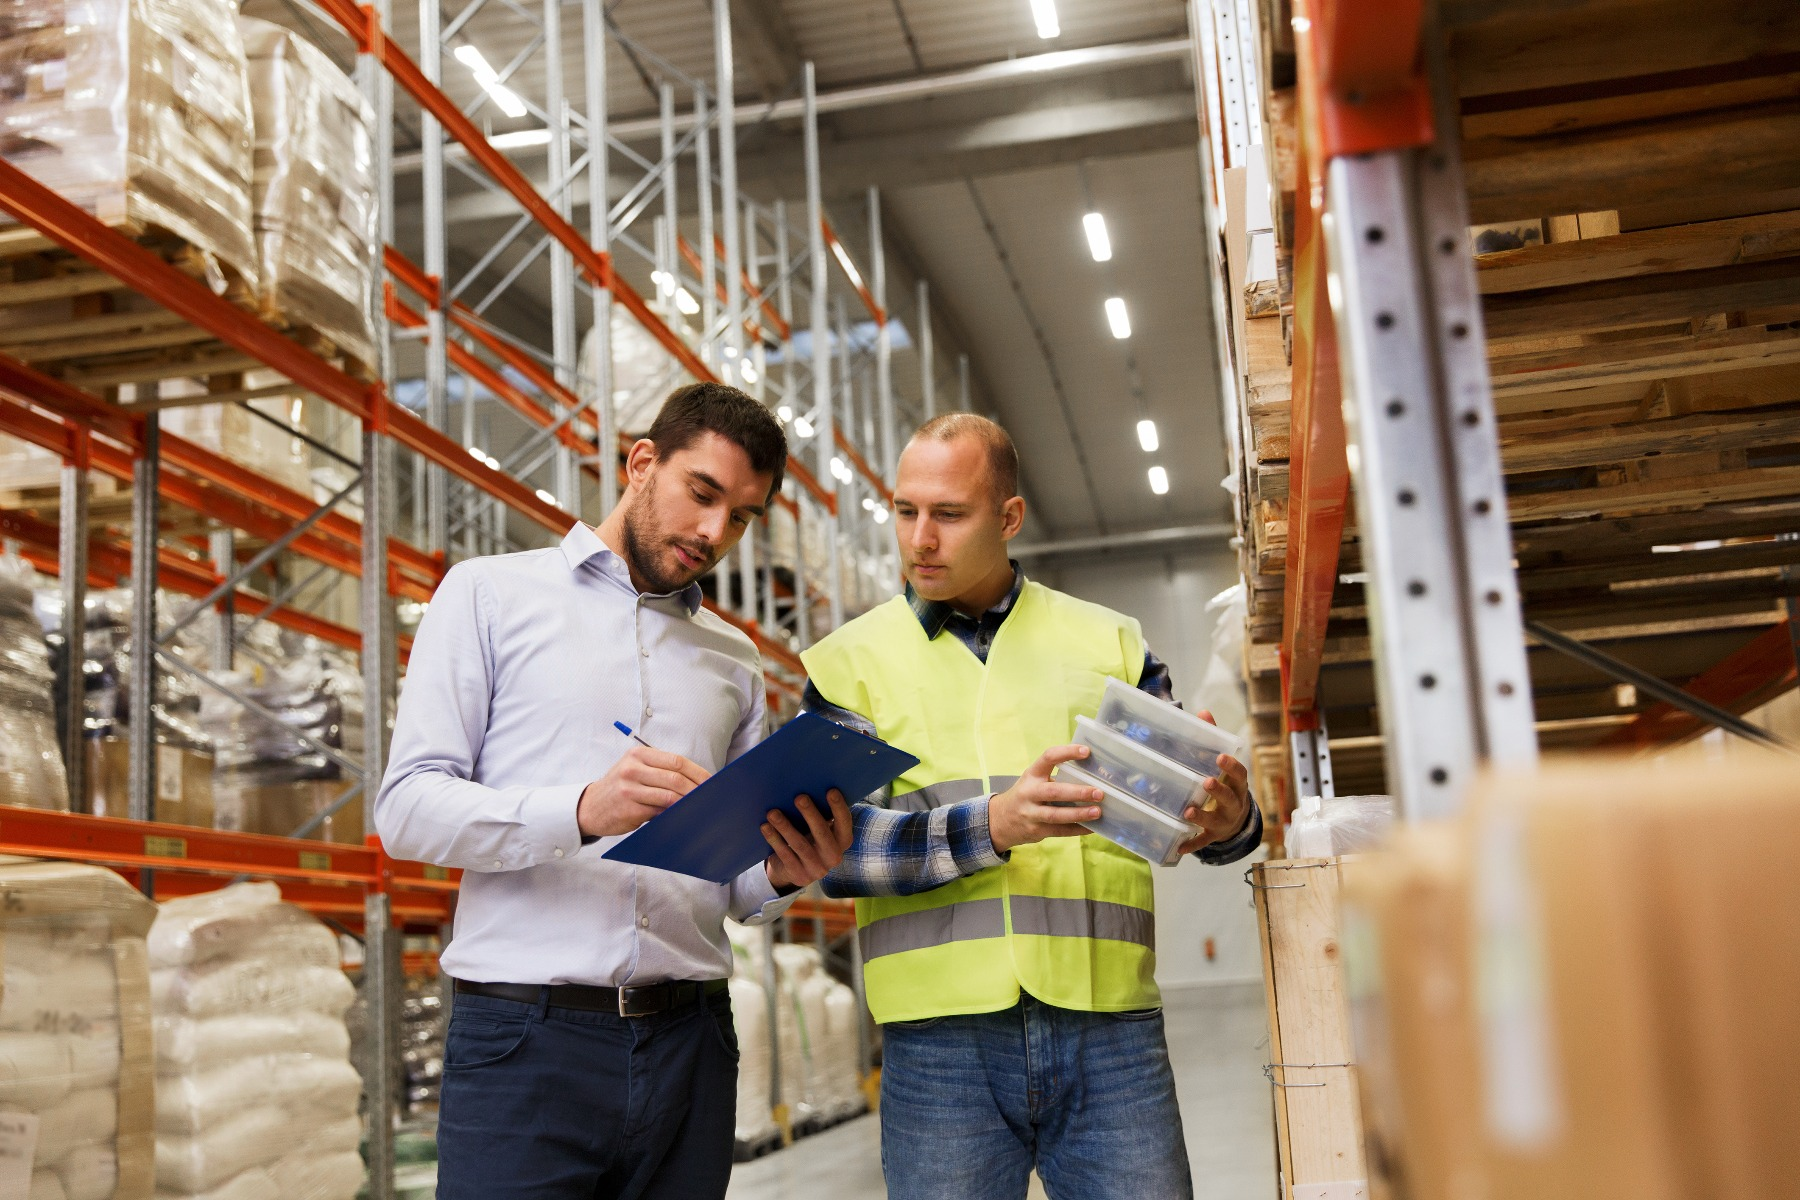 Two employees checking stock in warehouse